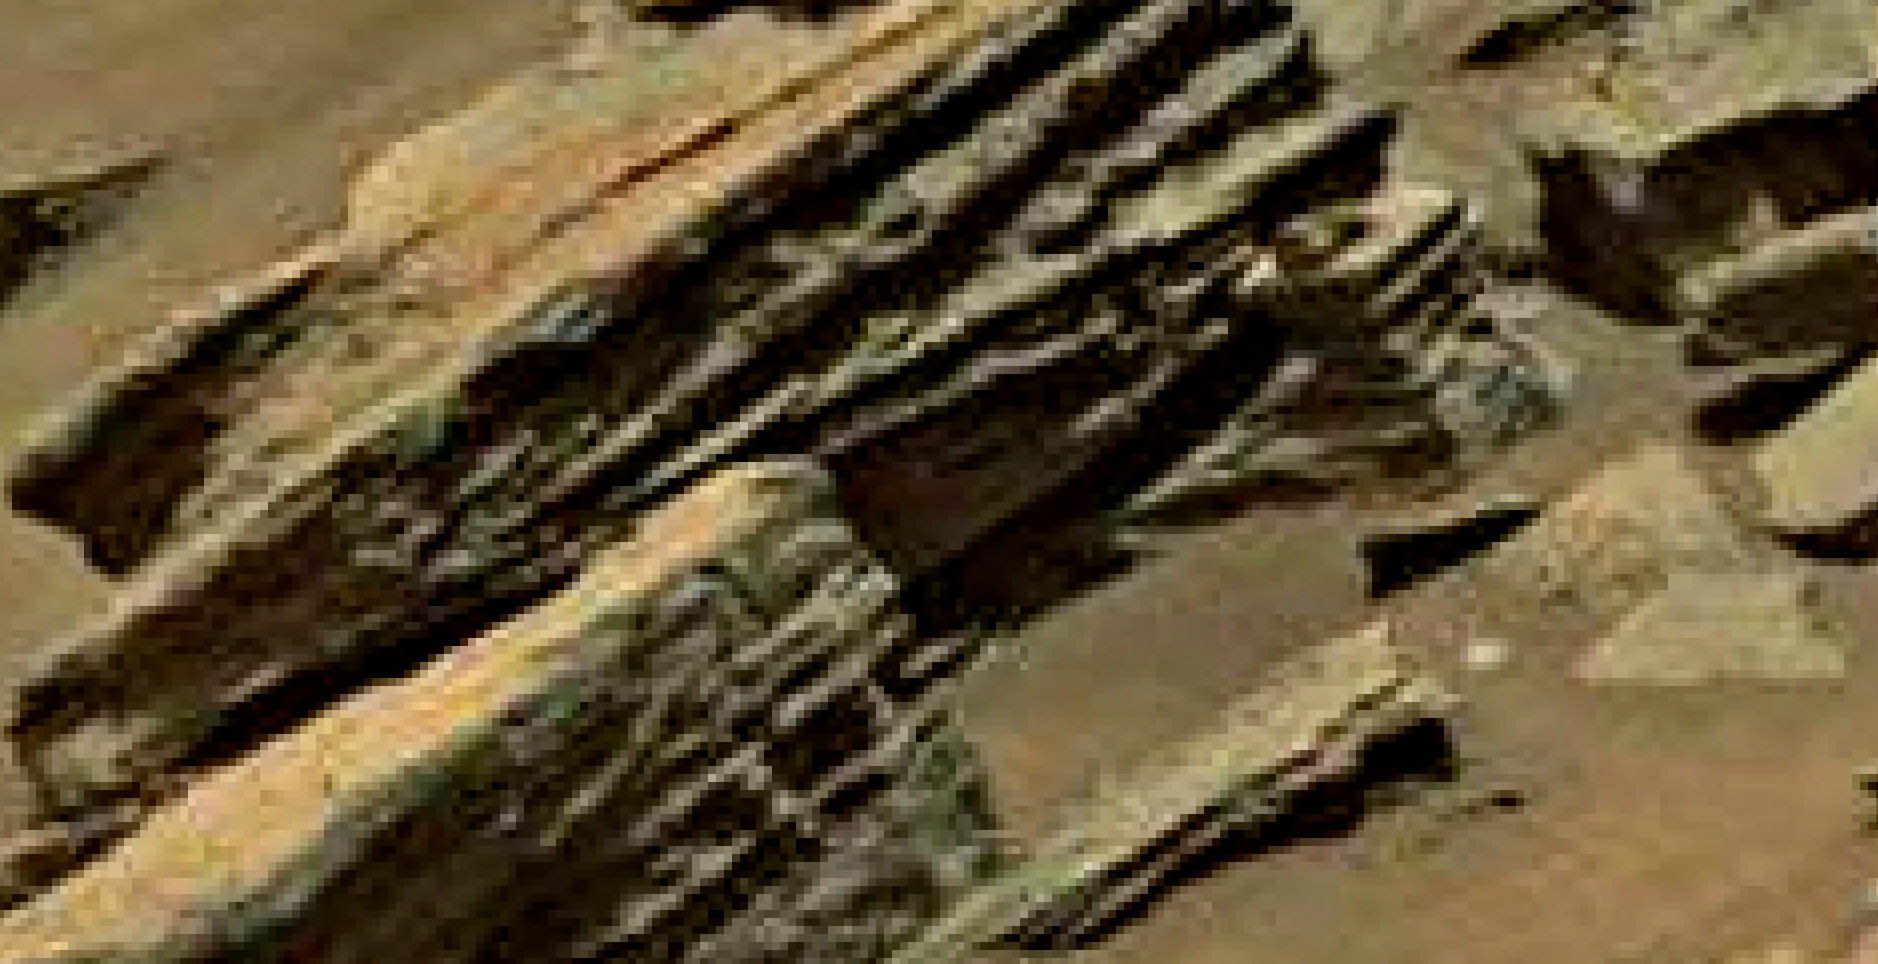 mars-sol-1455-anomaly-artifacts-1b-was-life-on-mars